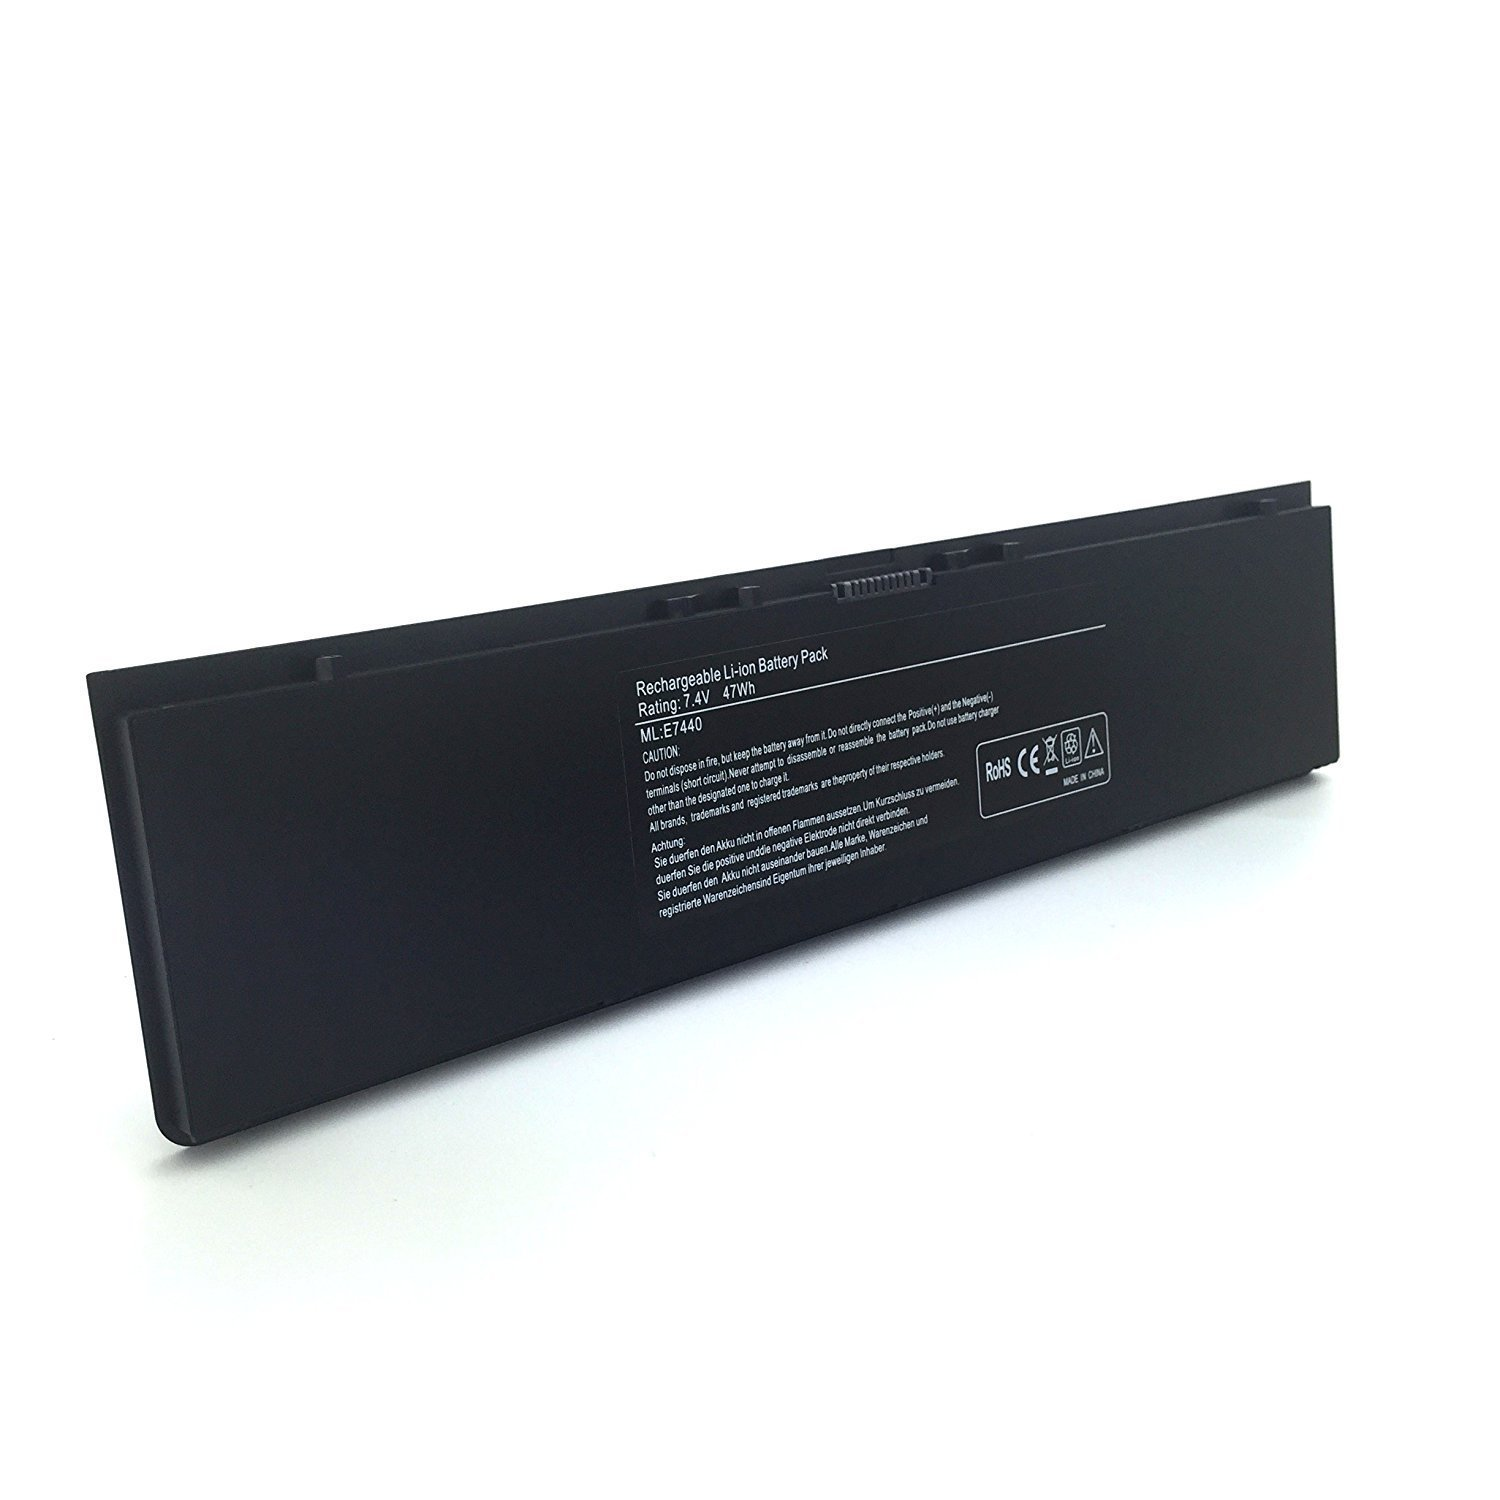 Dell e7440 Battery,34GKR 3RNFD Battery,for Dell Latitude